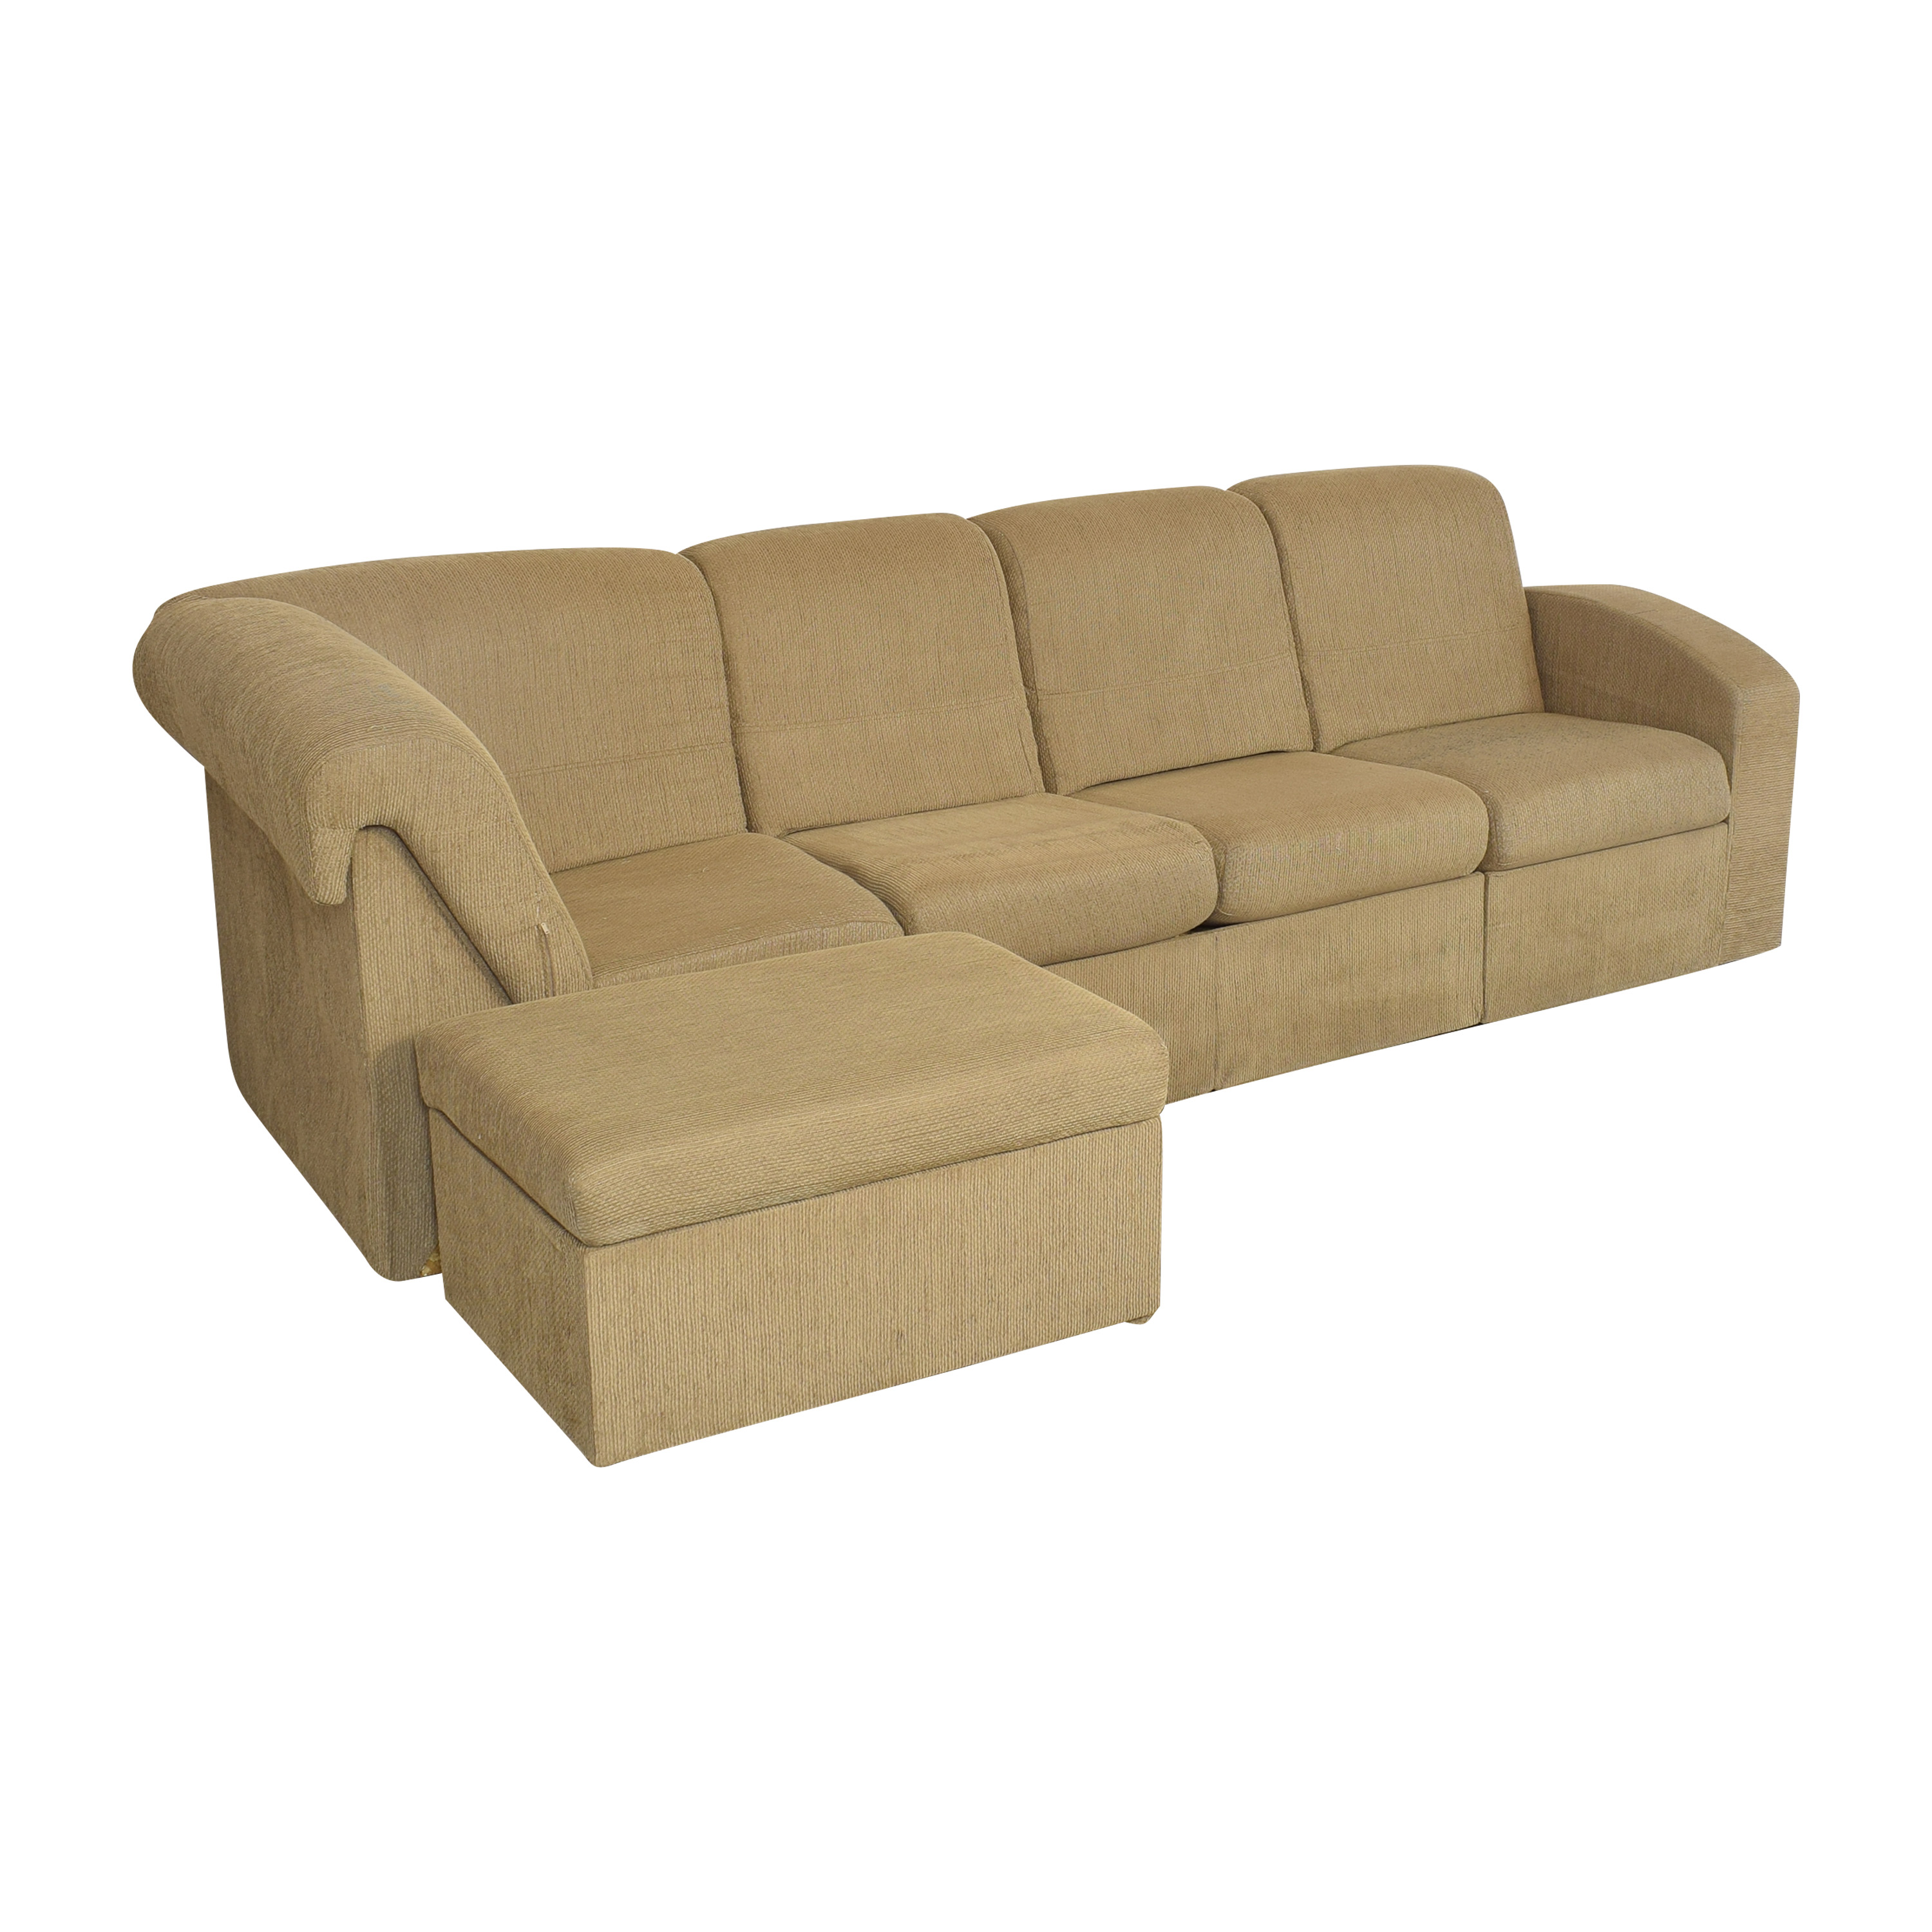 Home Reserve Home Reserve Brooks Sectional Couch beige